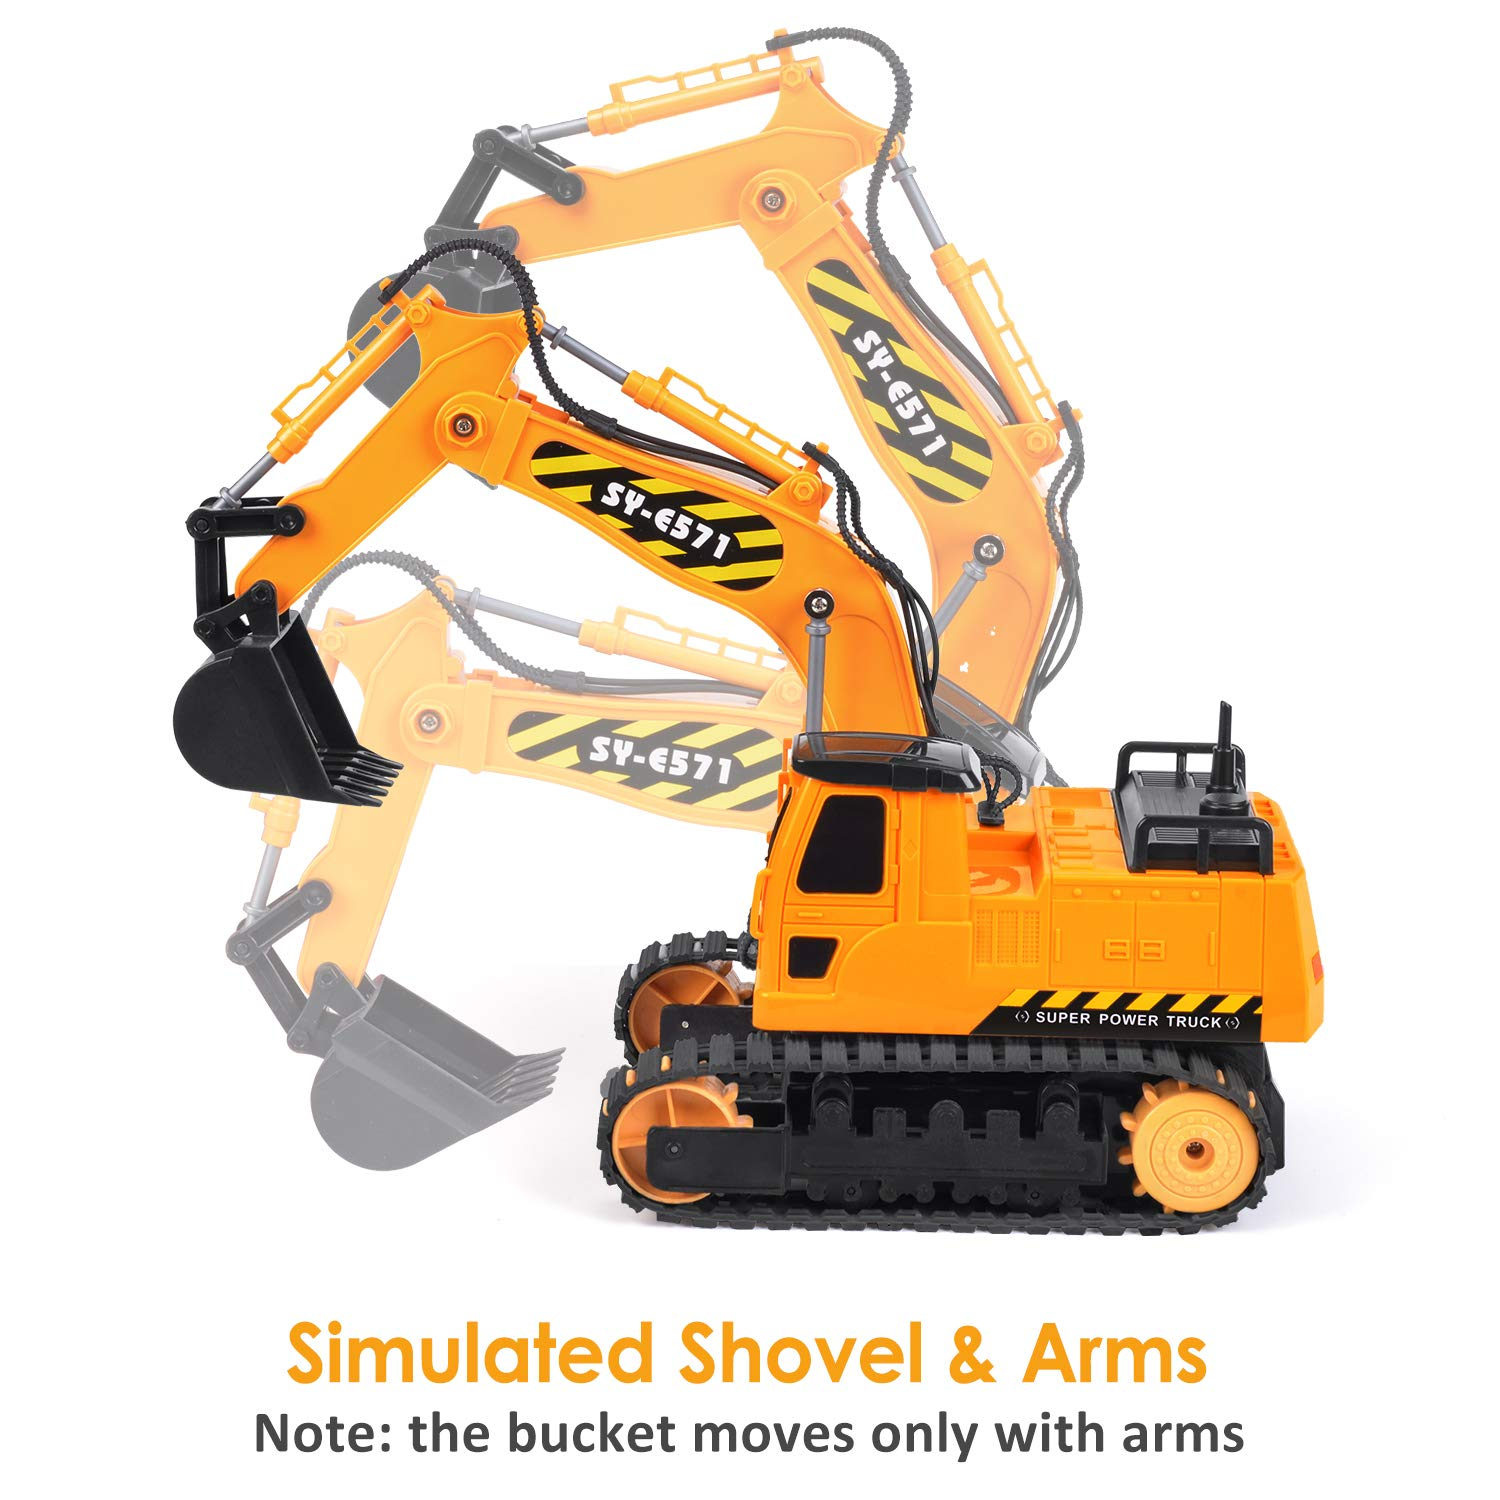 DOUBLE  E Remote Control Truck RC Excavator Toy with Rechargeable Battery Lights and Sounds 2.4GHz Construction Vehicles Tractor 1/26 by DOUBLE  E (Image #4)